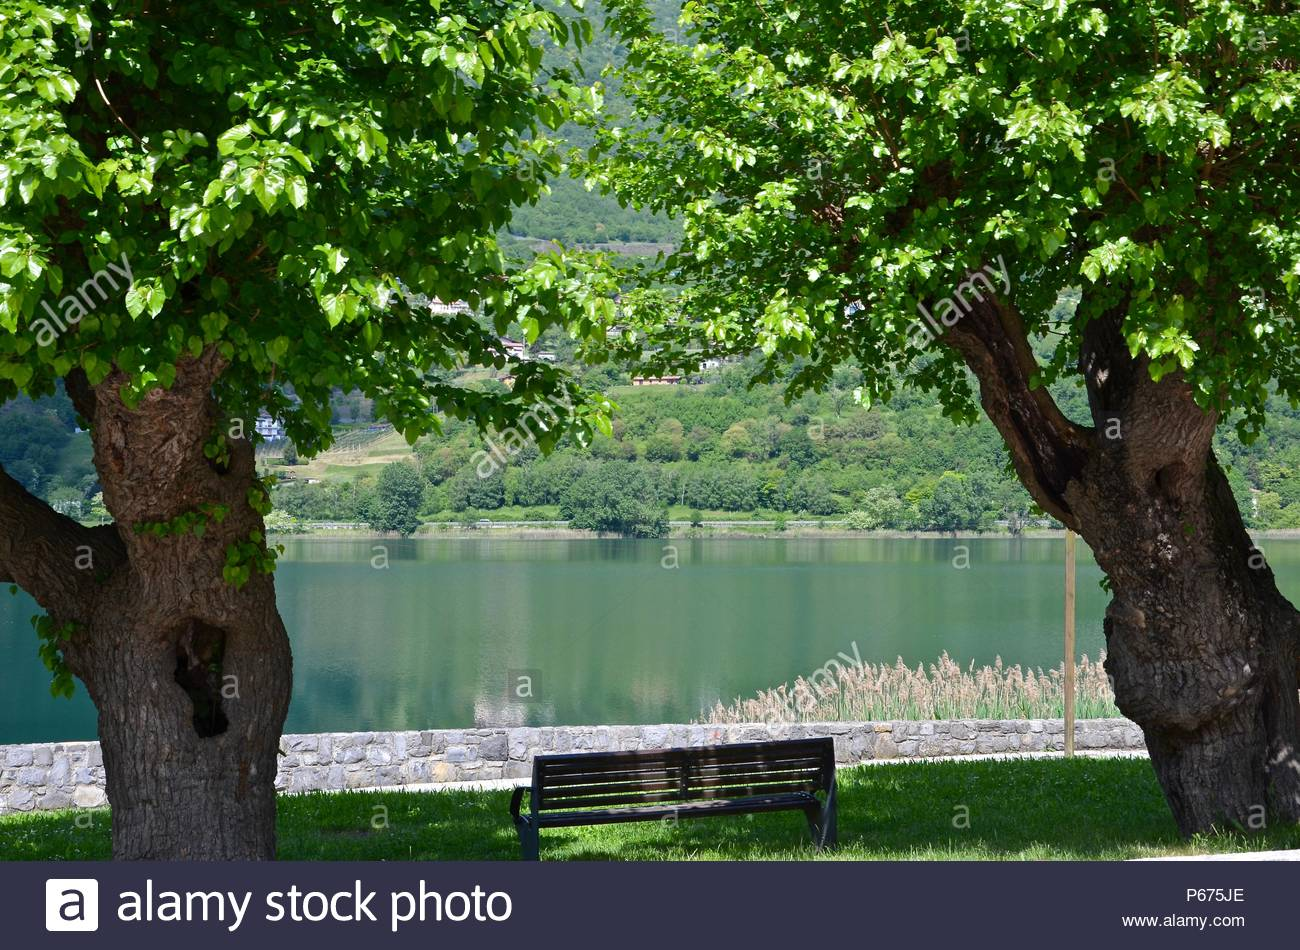 View between two trees towards Lago d'Iseo in Lombardy, Italy, Lake, park bench, spring, daylight, sunny, romantic, idyllic, Italian lifestyle - Stock Image